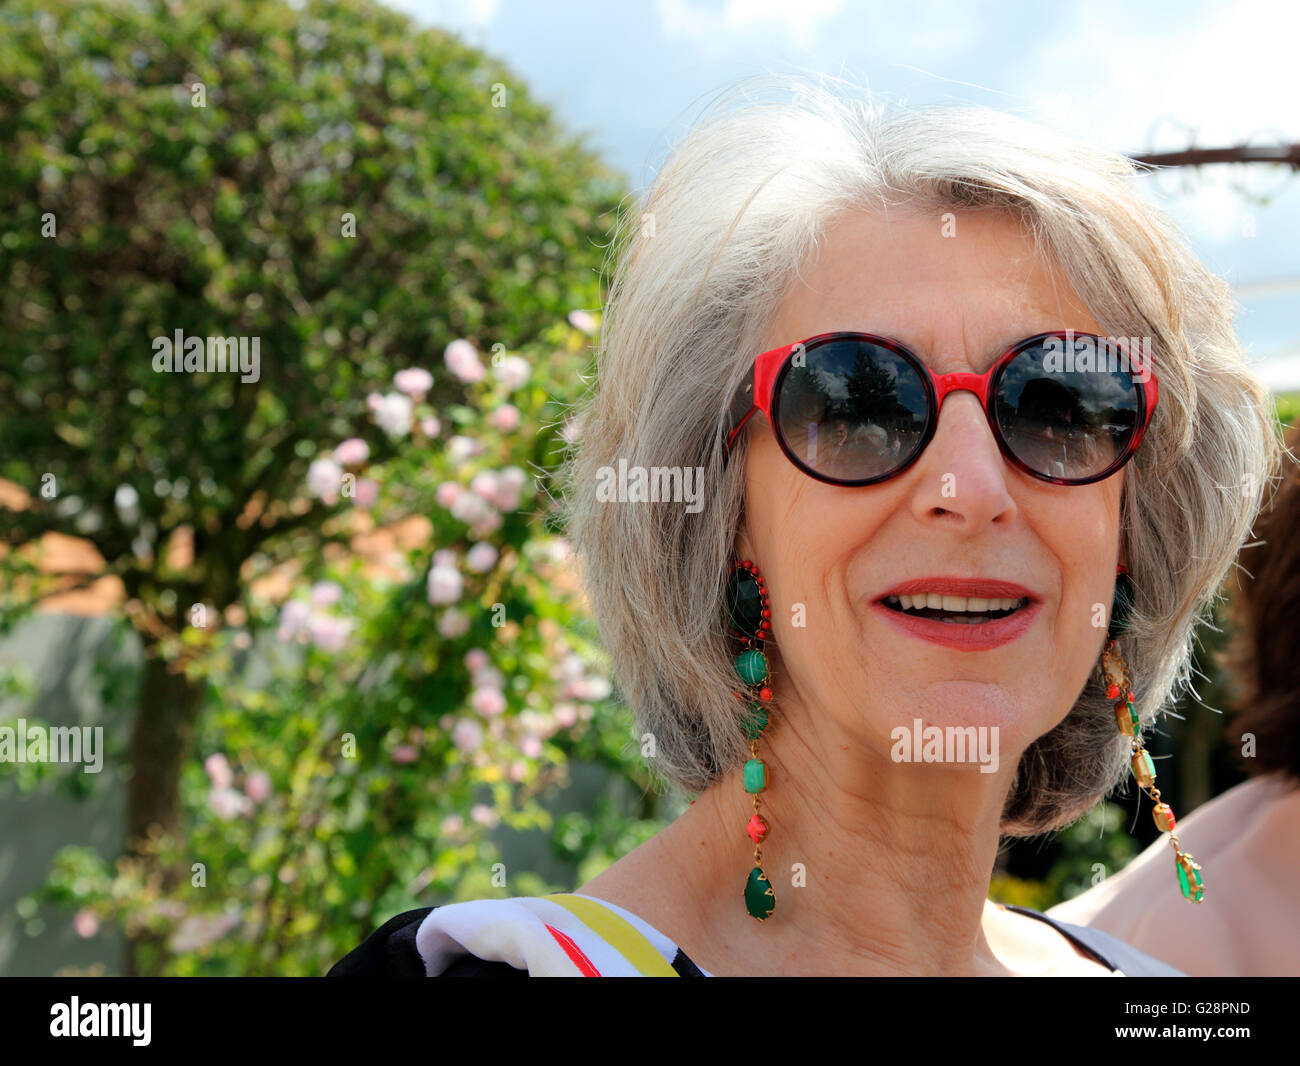 Maureen Lipman (born 1946) Maureen Lipman (born 1946) new pics